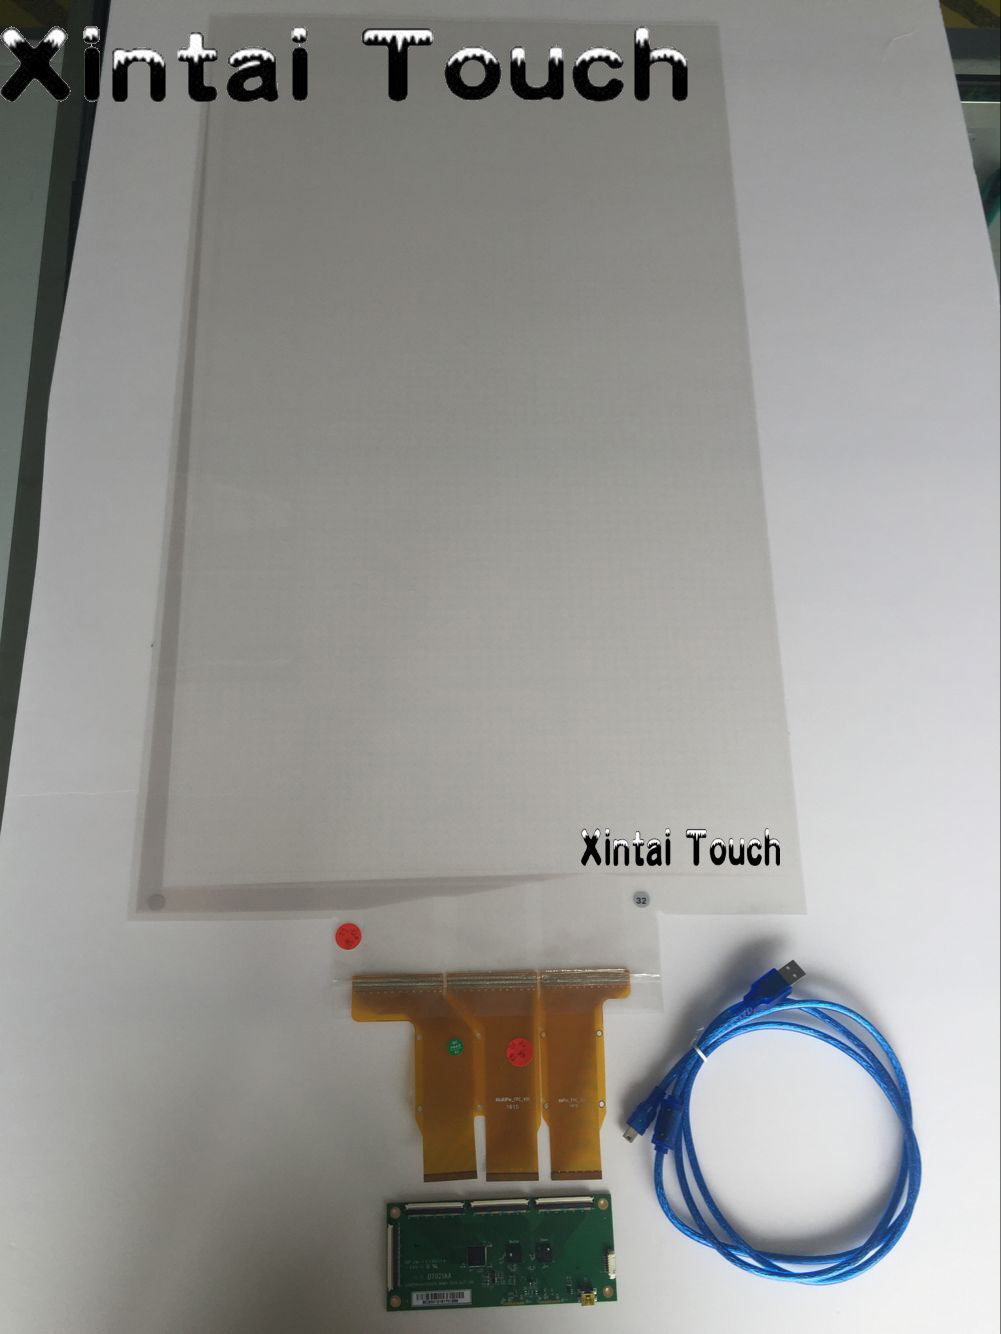 <font><b>42</b></font> zoll projiziert kapazitiven touchscreen folie, dual interaktive <font><b>touch</b></font> panel film image